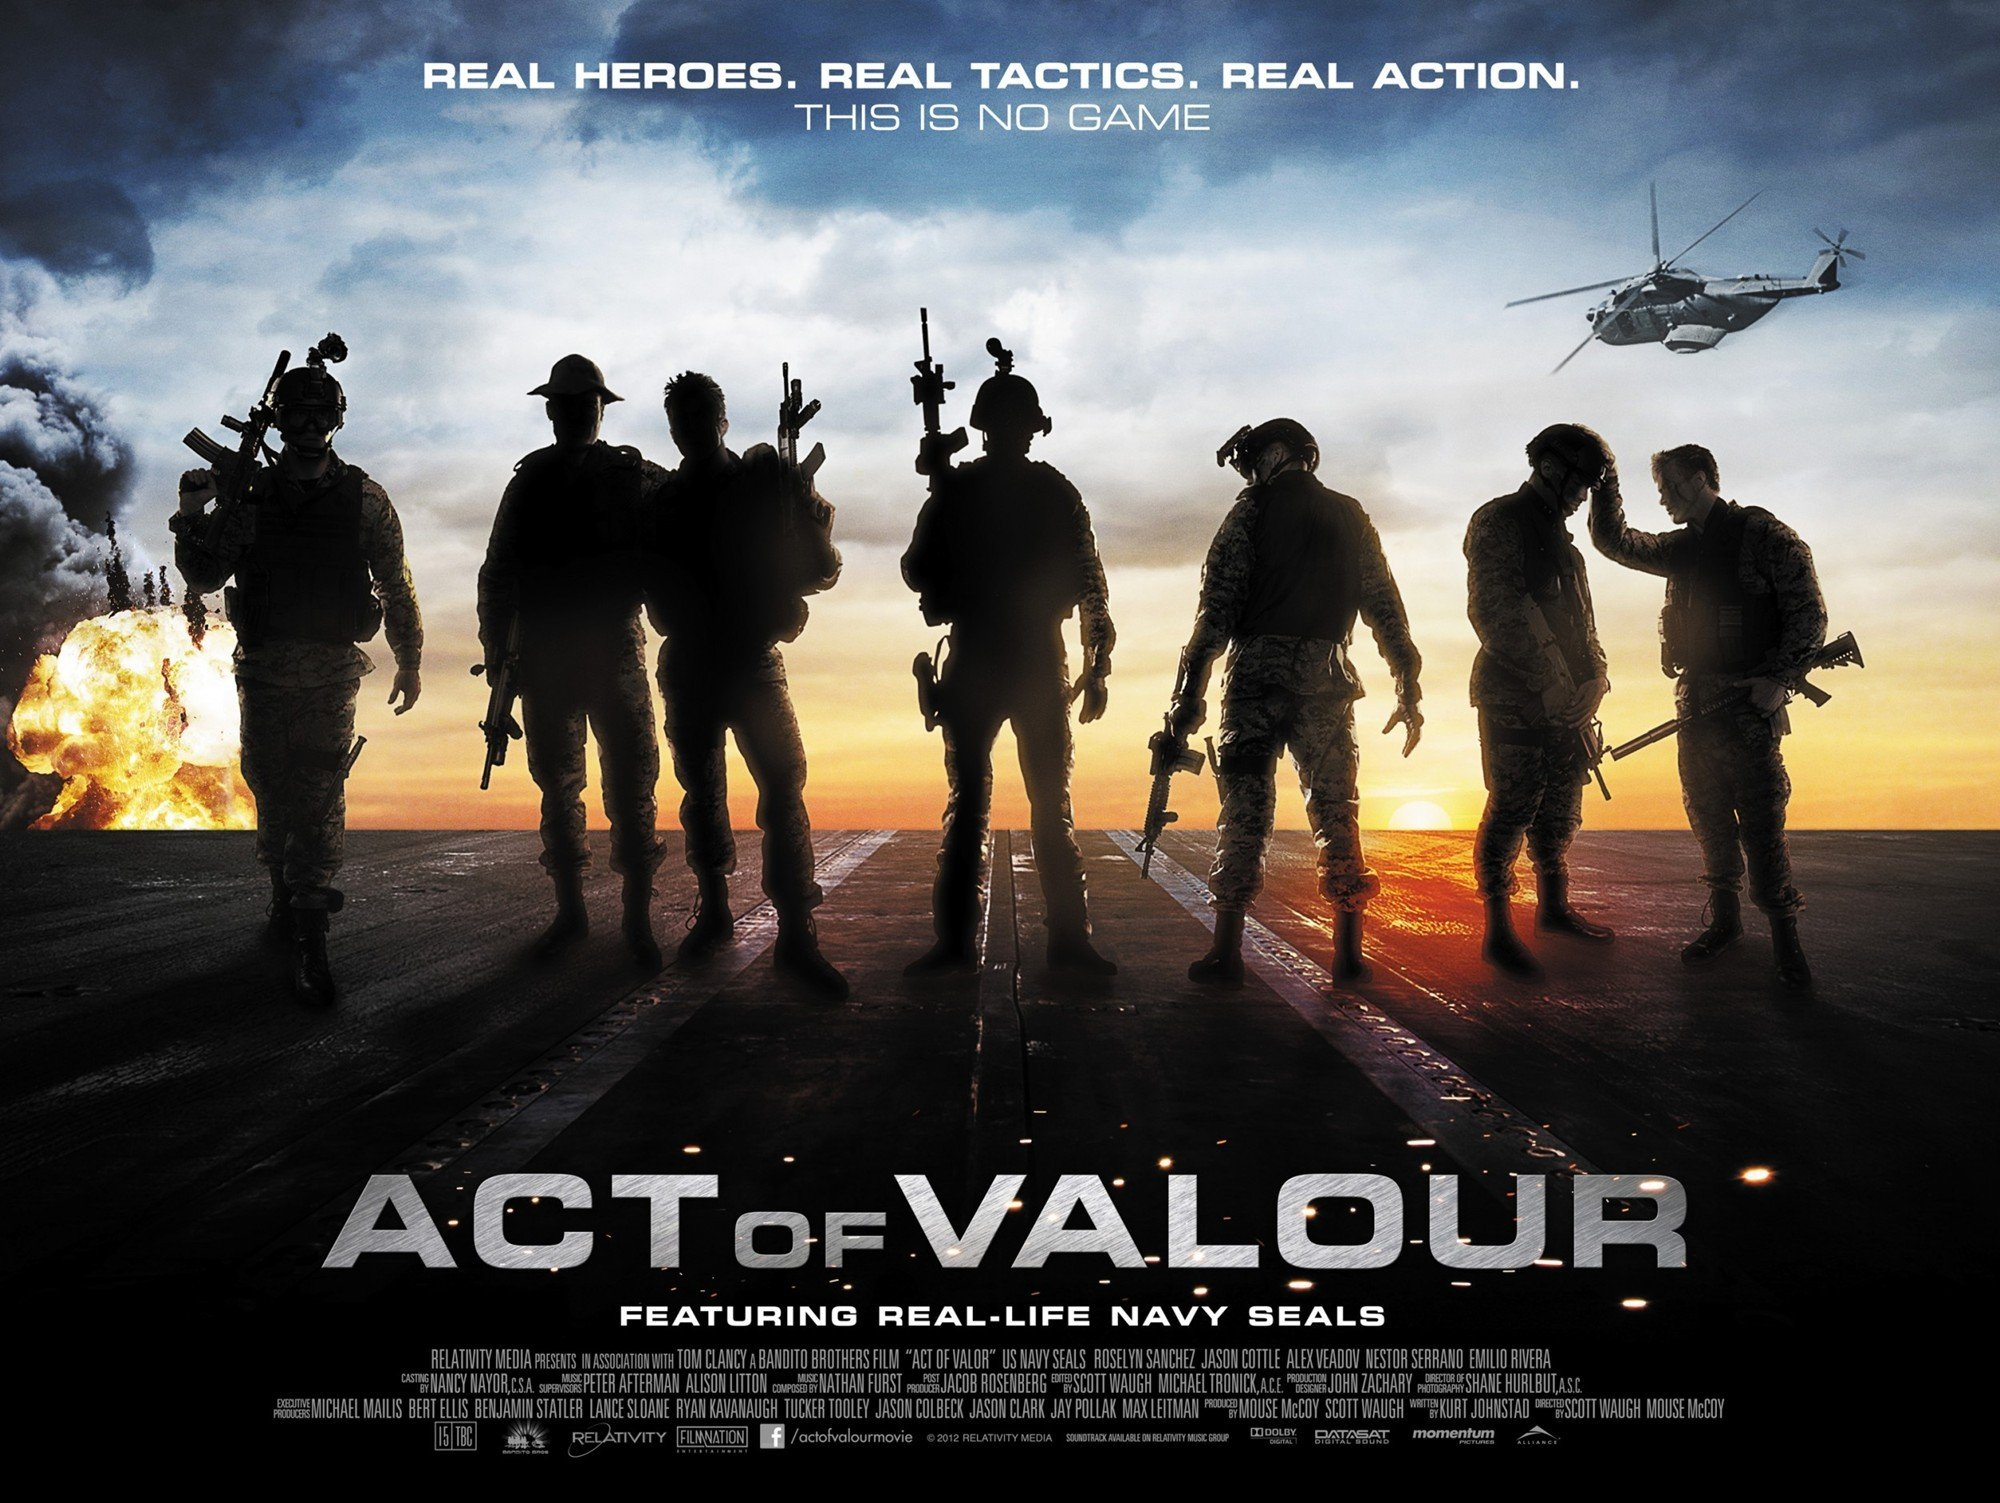 Fil the act of valor